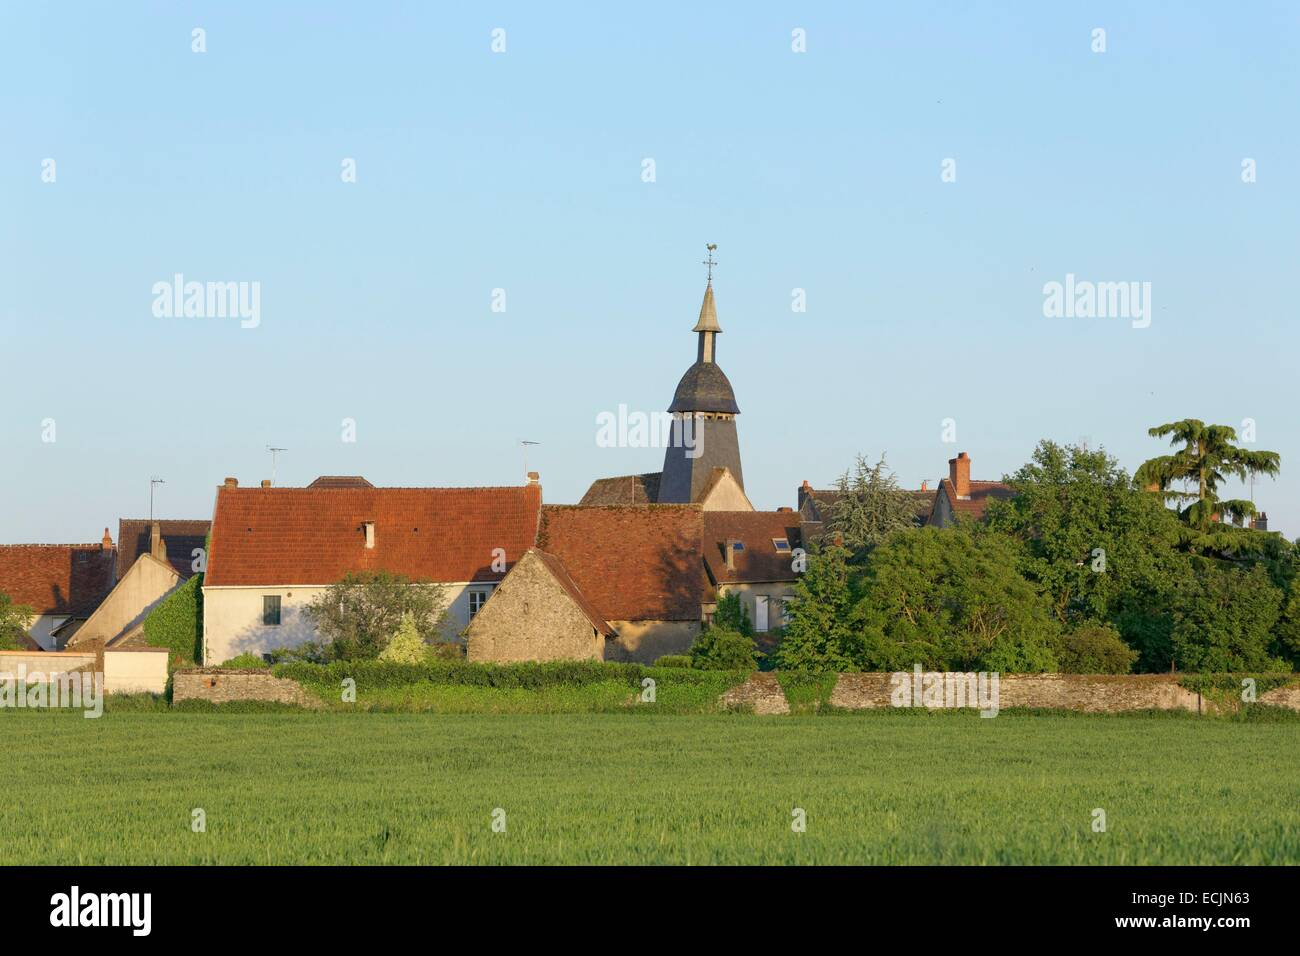 France, Creuse, Fresselines, Claude Monnet paint 23 paintings in this village, Creuse valley - Stock Image